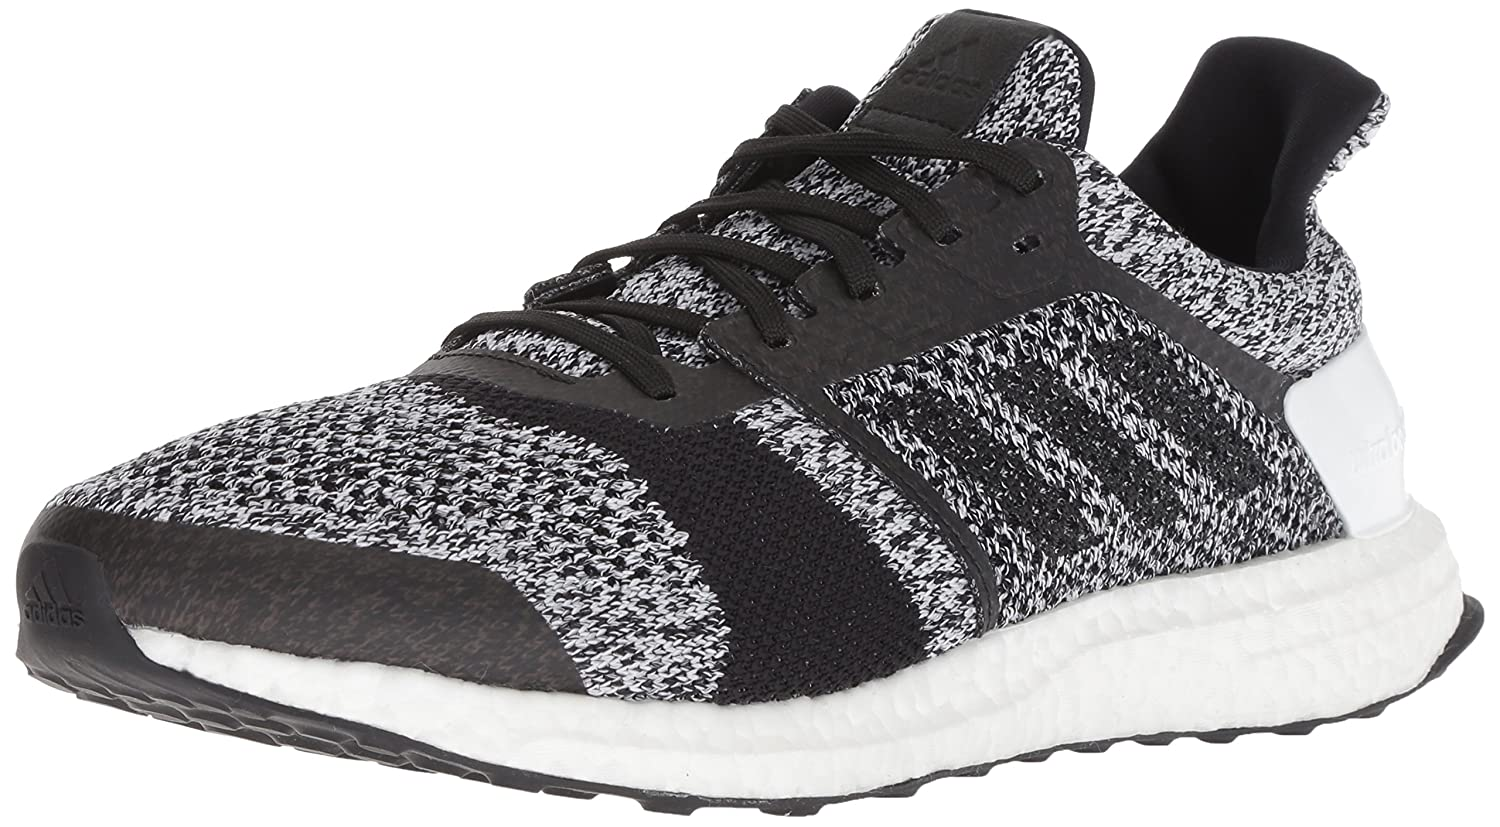 298bfd91d8509 Adidas Men s Ultraboost ST Running Shoes  Amazon.ca  Shoes   Handbags